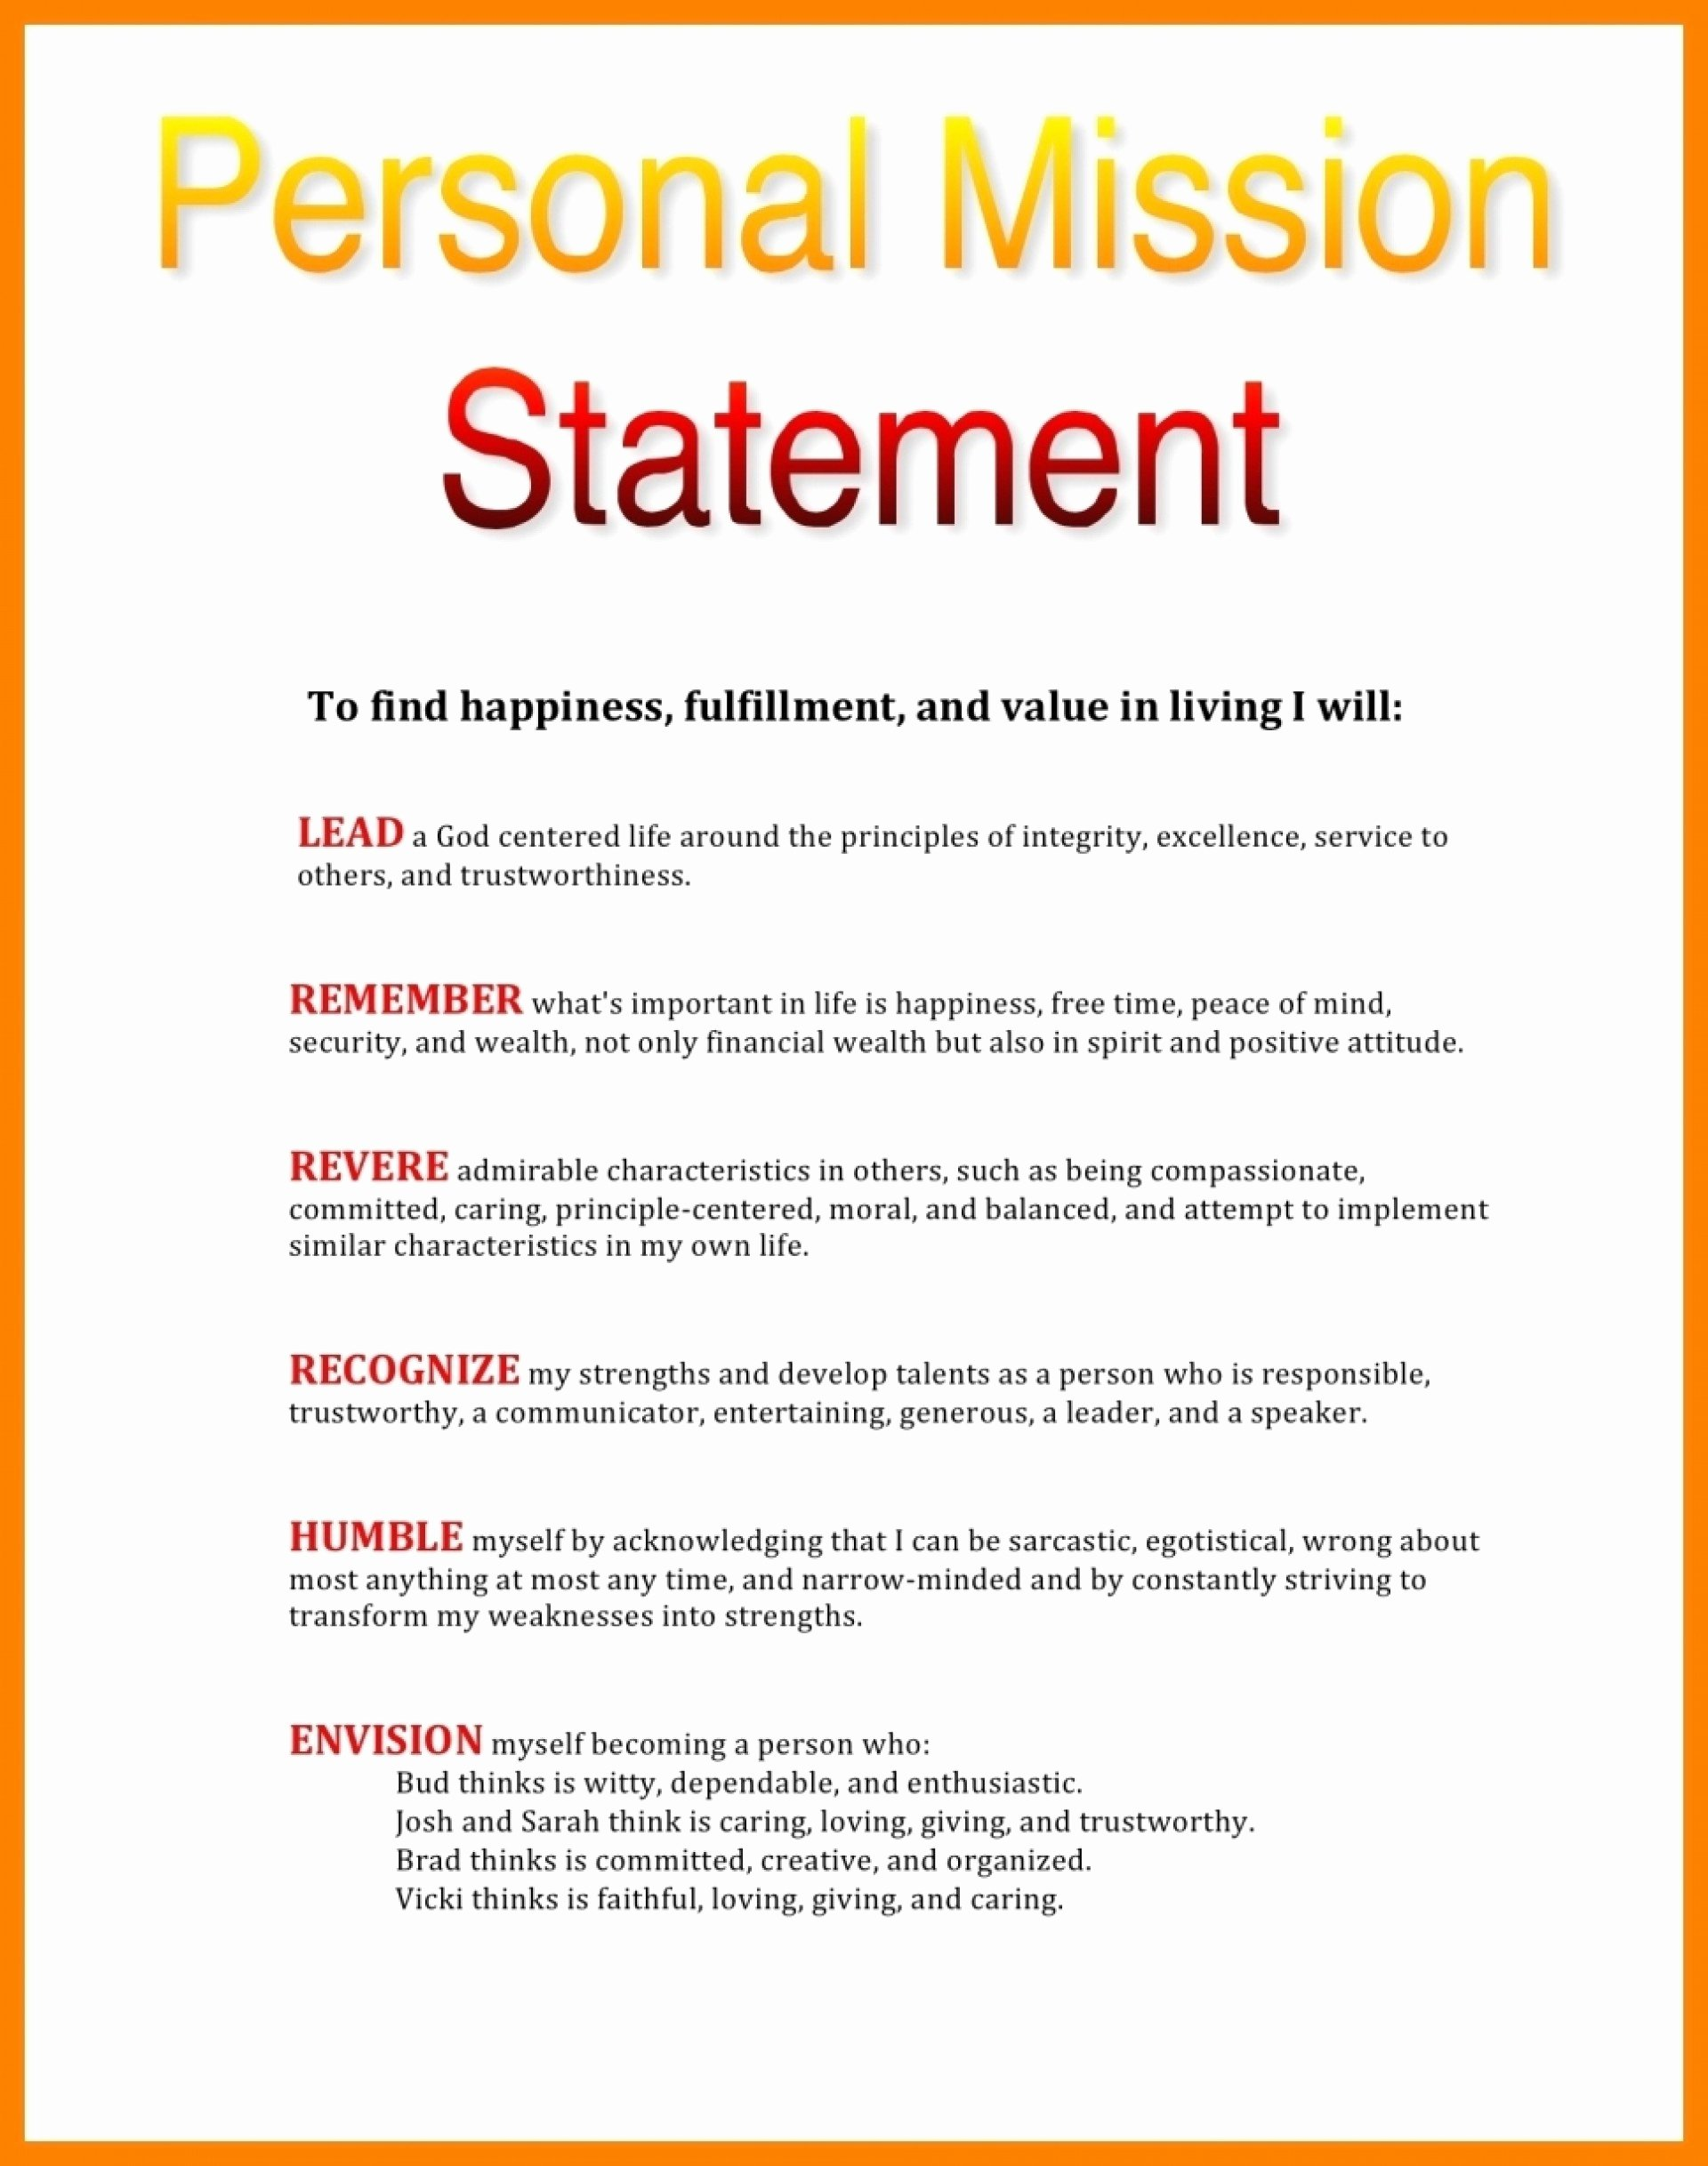 Personal Mission Statement Templates Awesome 10 Examples Of Personal Vision Statements